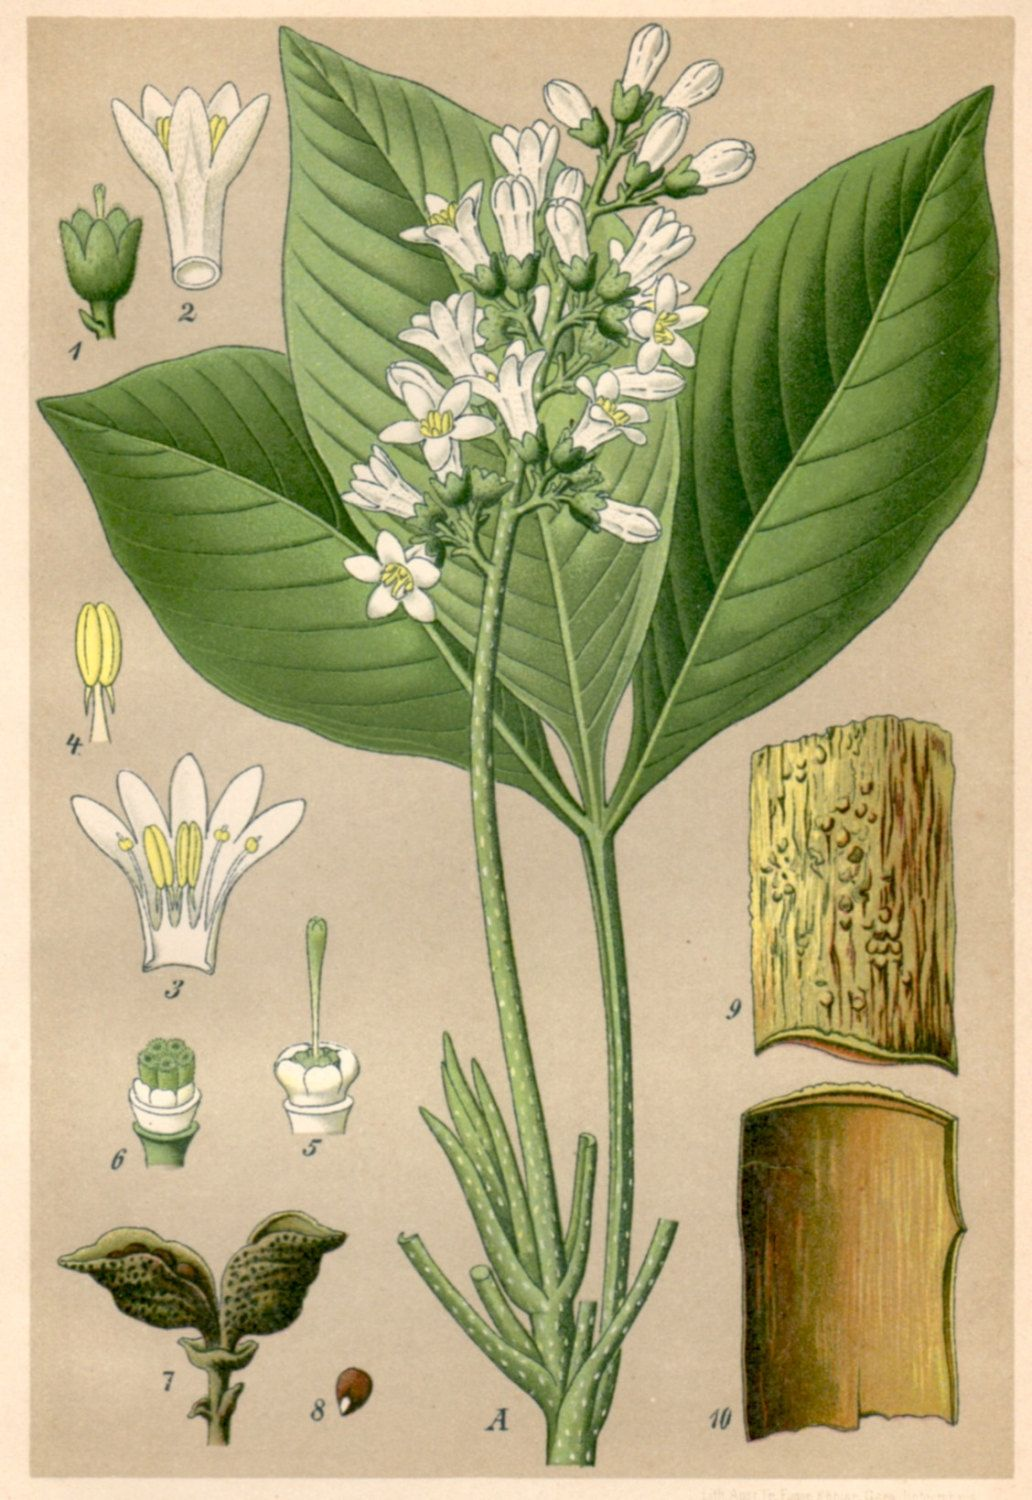 1901 Antique Botanical Print, Angustura Vera, Homeopathy, Angostura trifoliata, Galipea officinalis https://www.etsy.com/uk/listing/204080444/1901-antique-botanical-print-angustura?ref=shop_home_active_17